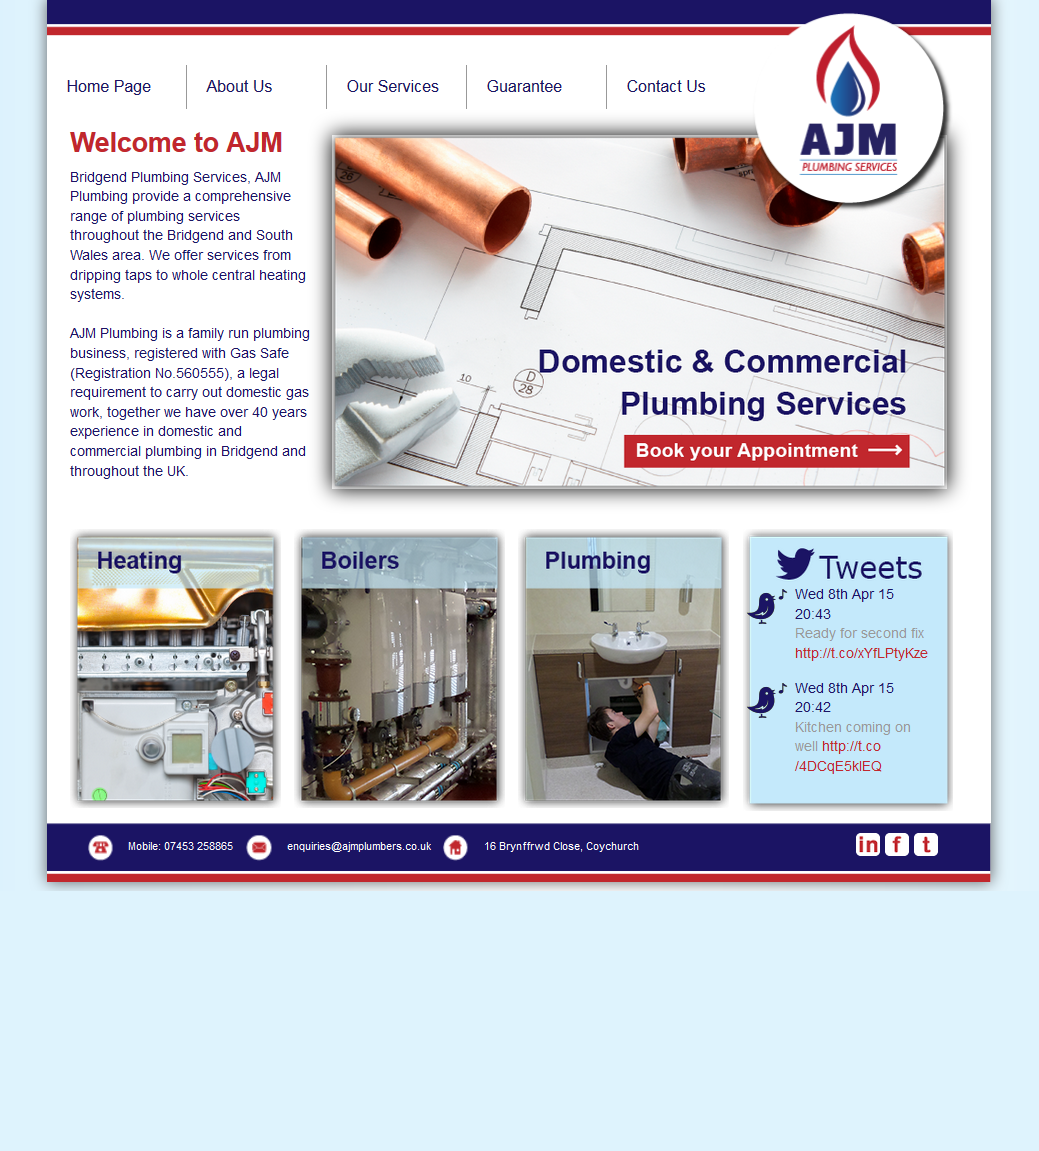 An image from the AJM Plumbing website